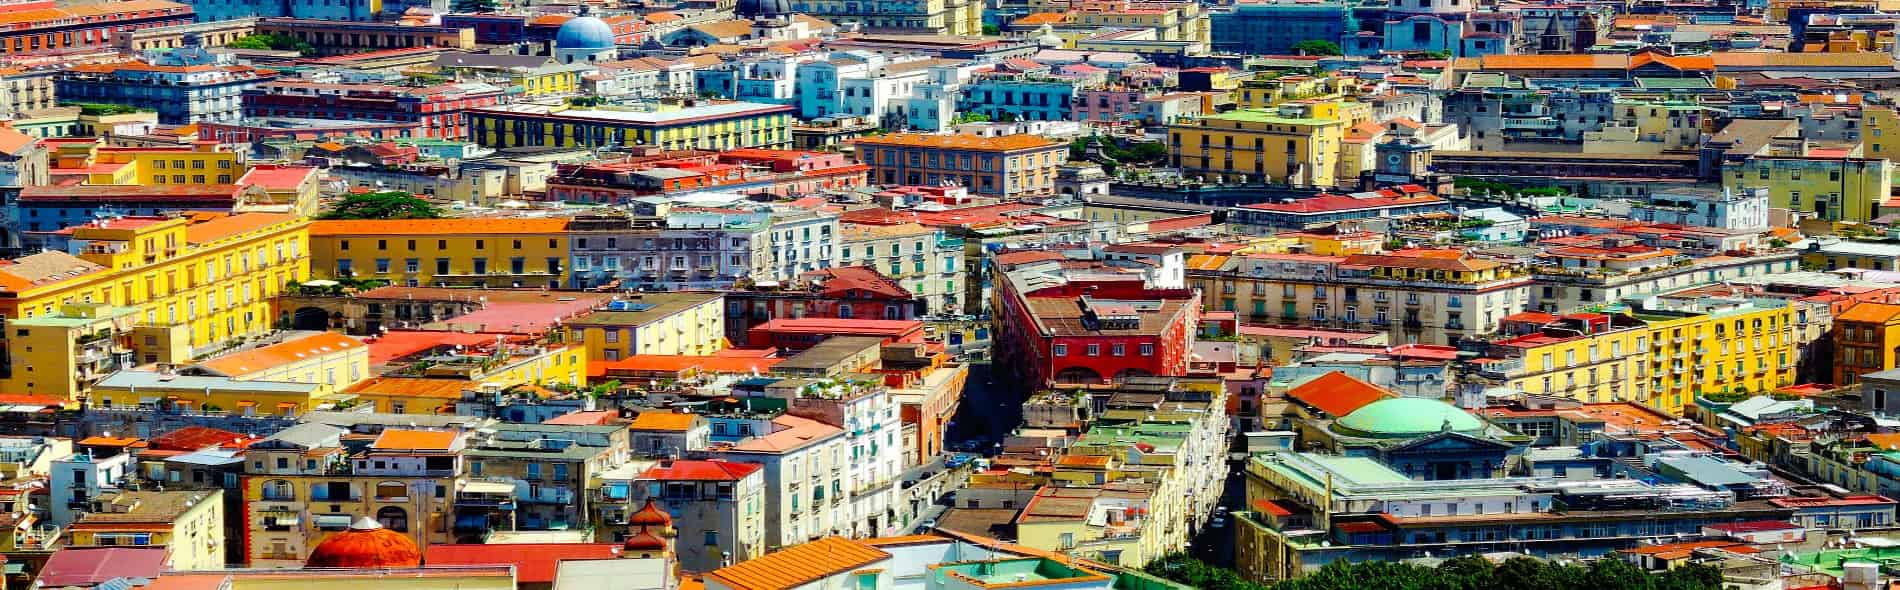 Walking Guided Tour of Naples